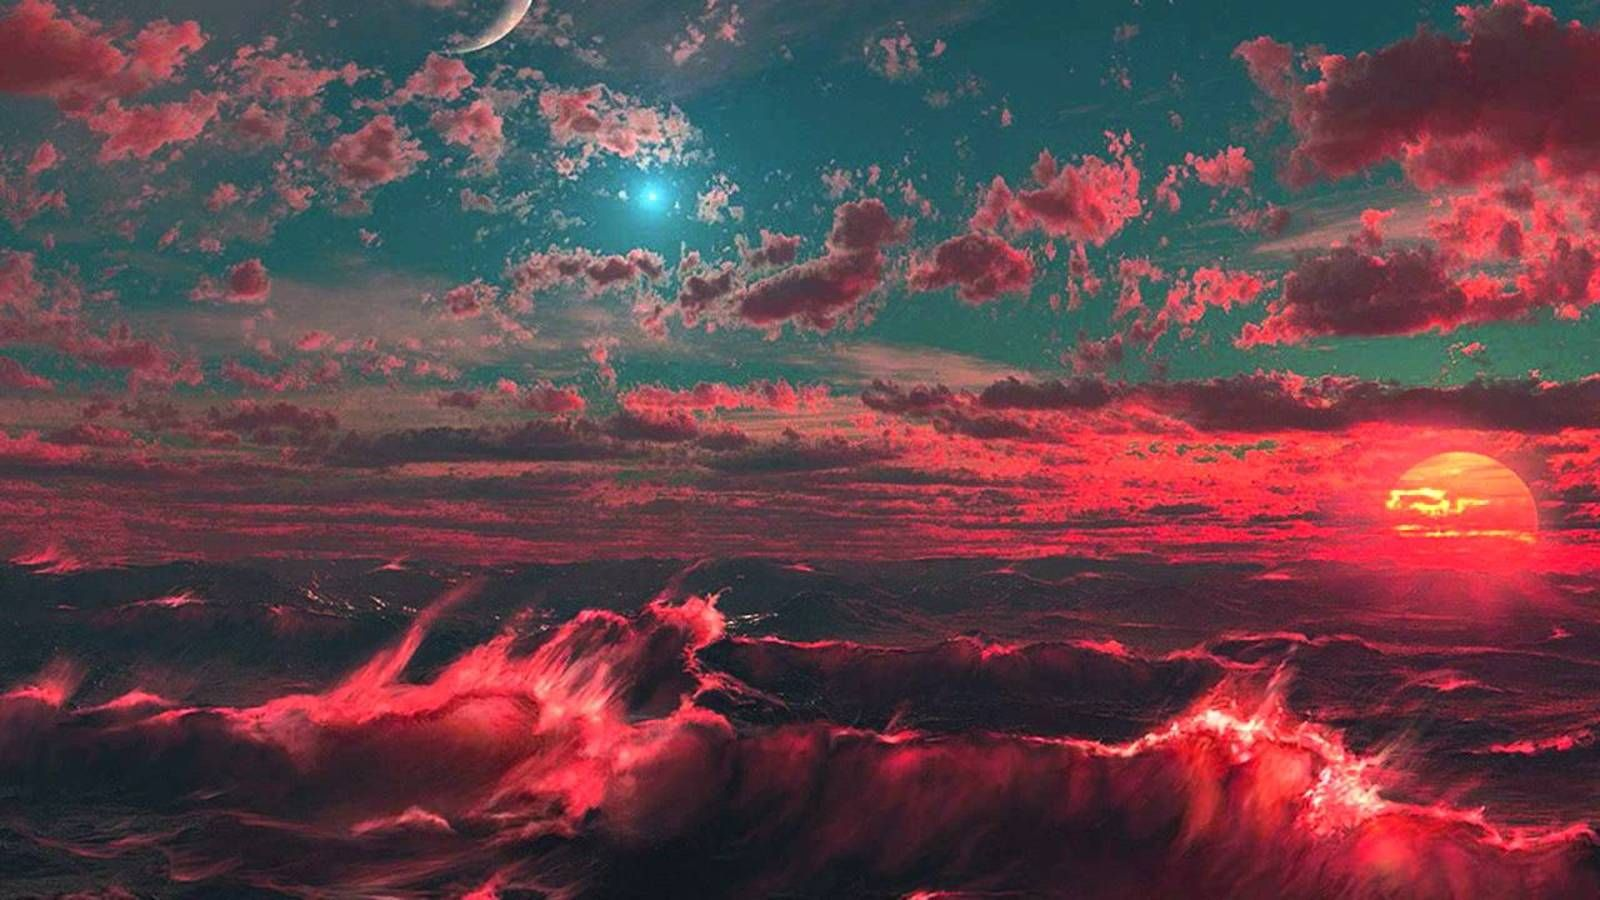 aesthetic laptop wallpaper,sky,red,nature,cloud,geological phenomenon